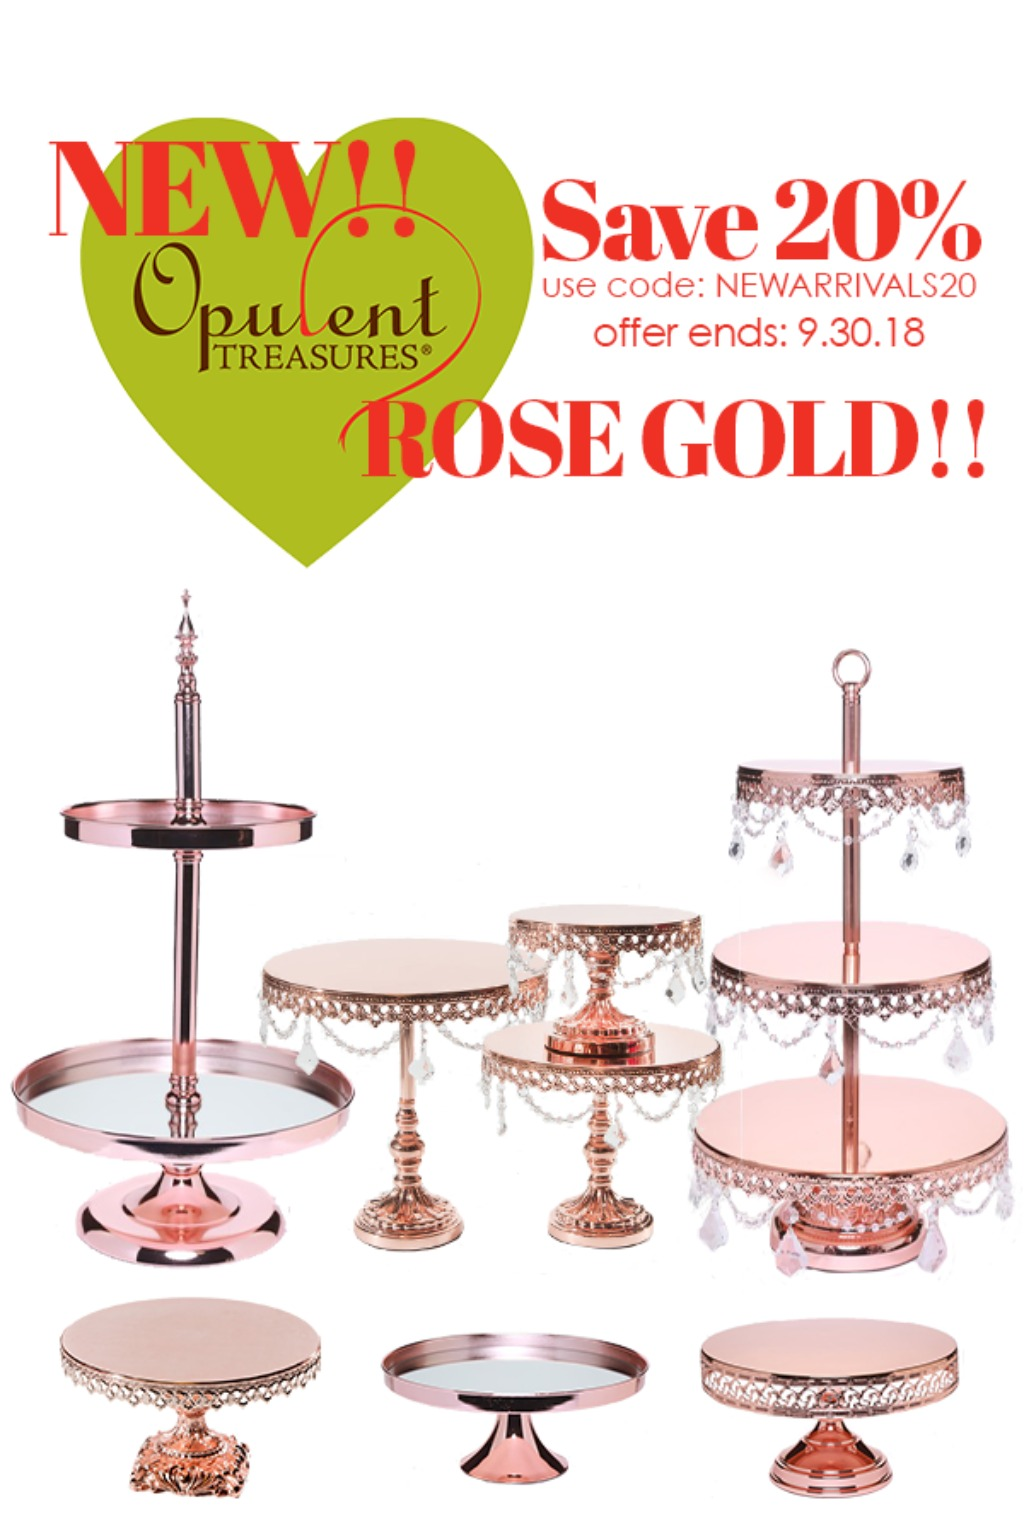 Opulent Treasures New Arrivals Sale